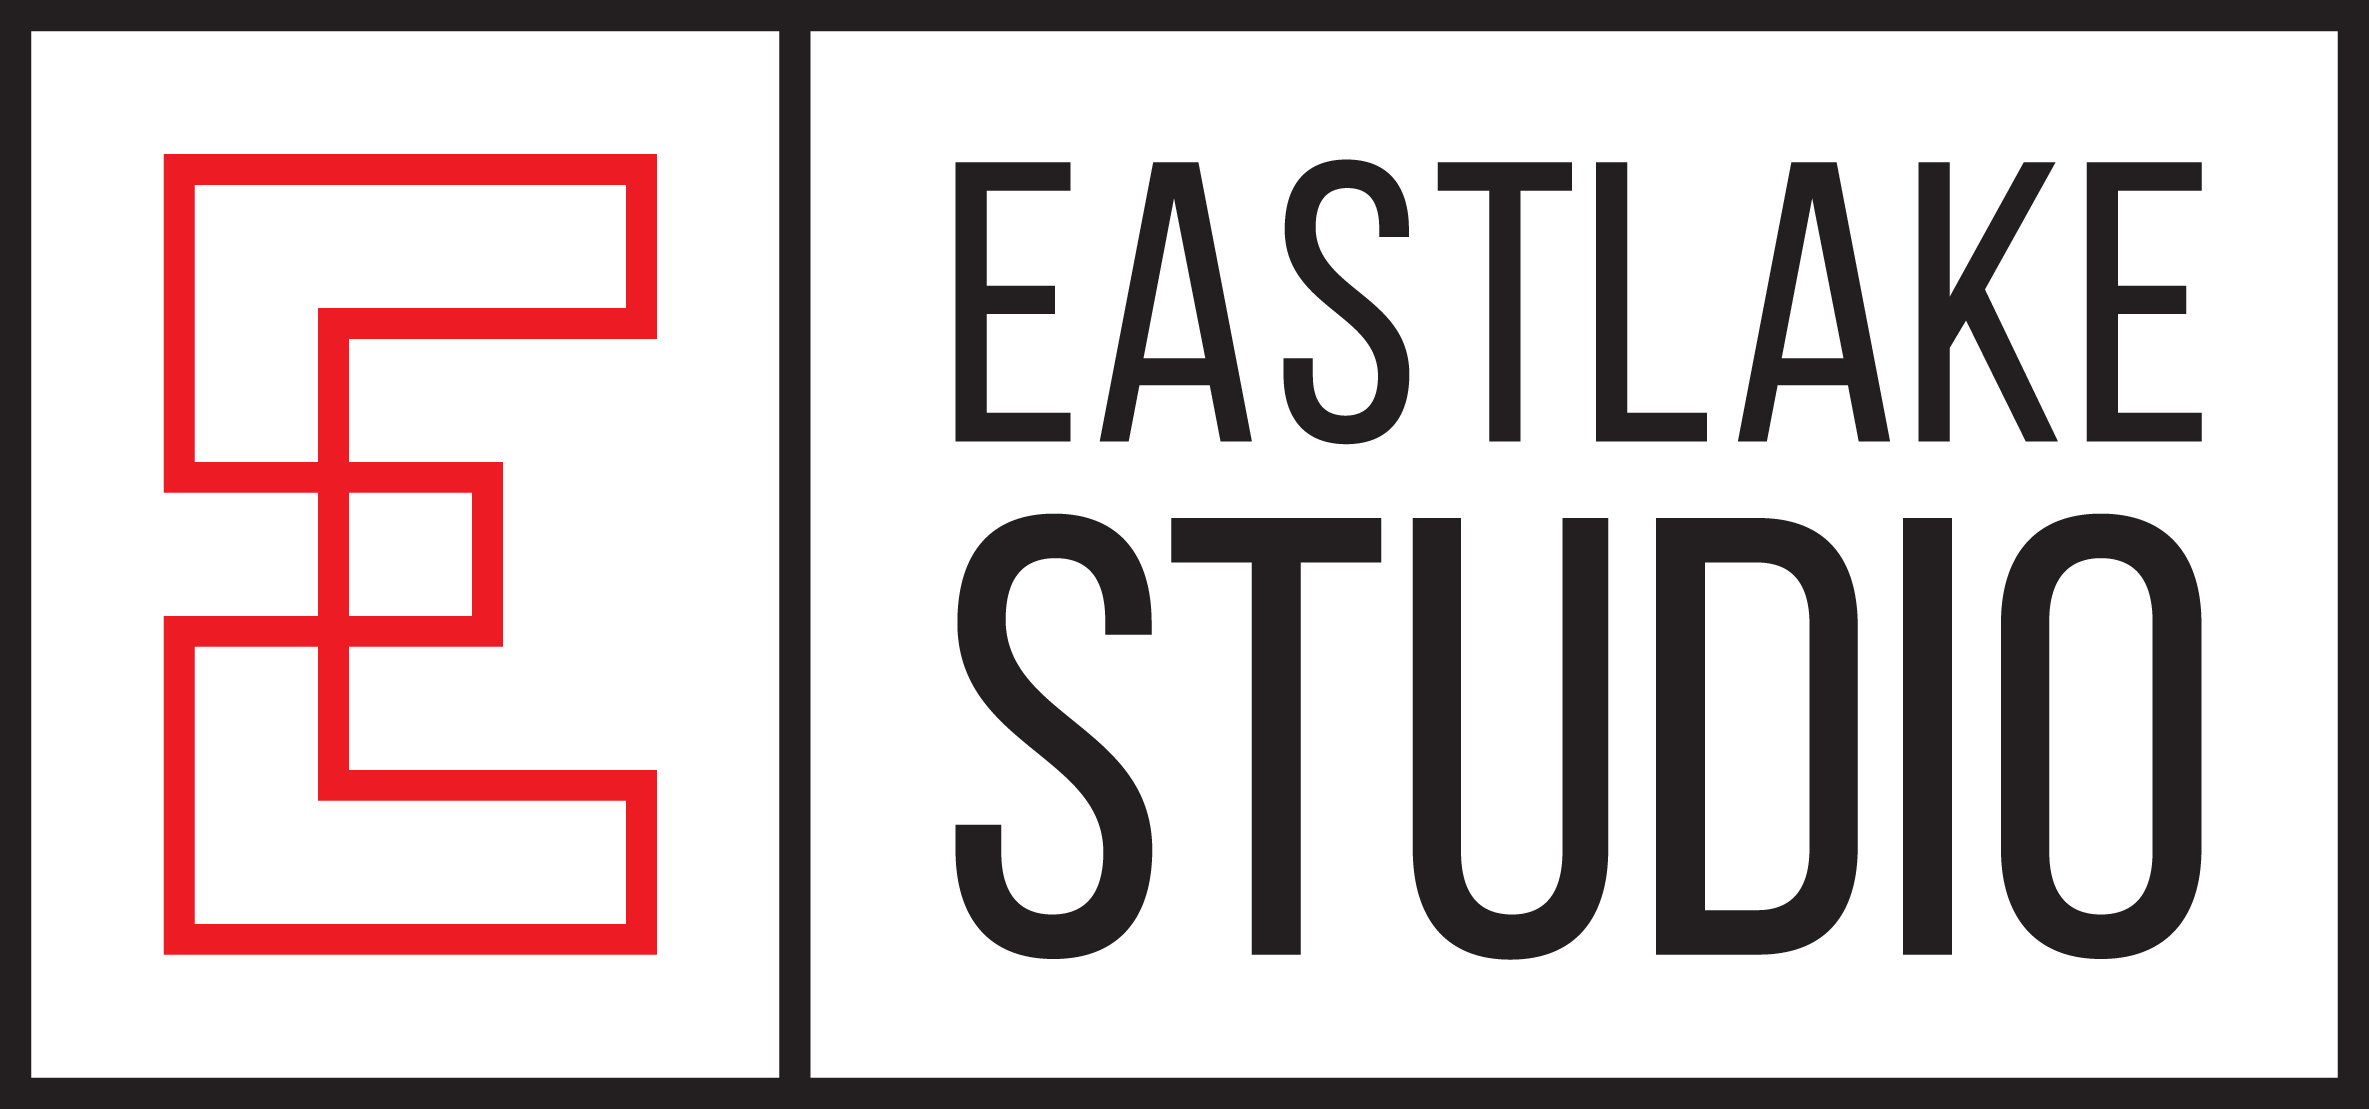 EastlekStudio_Red_Horizontal-1.png